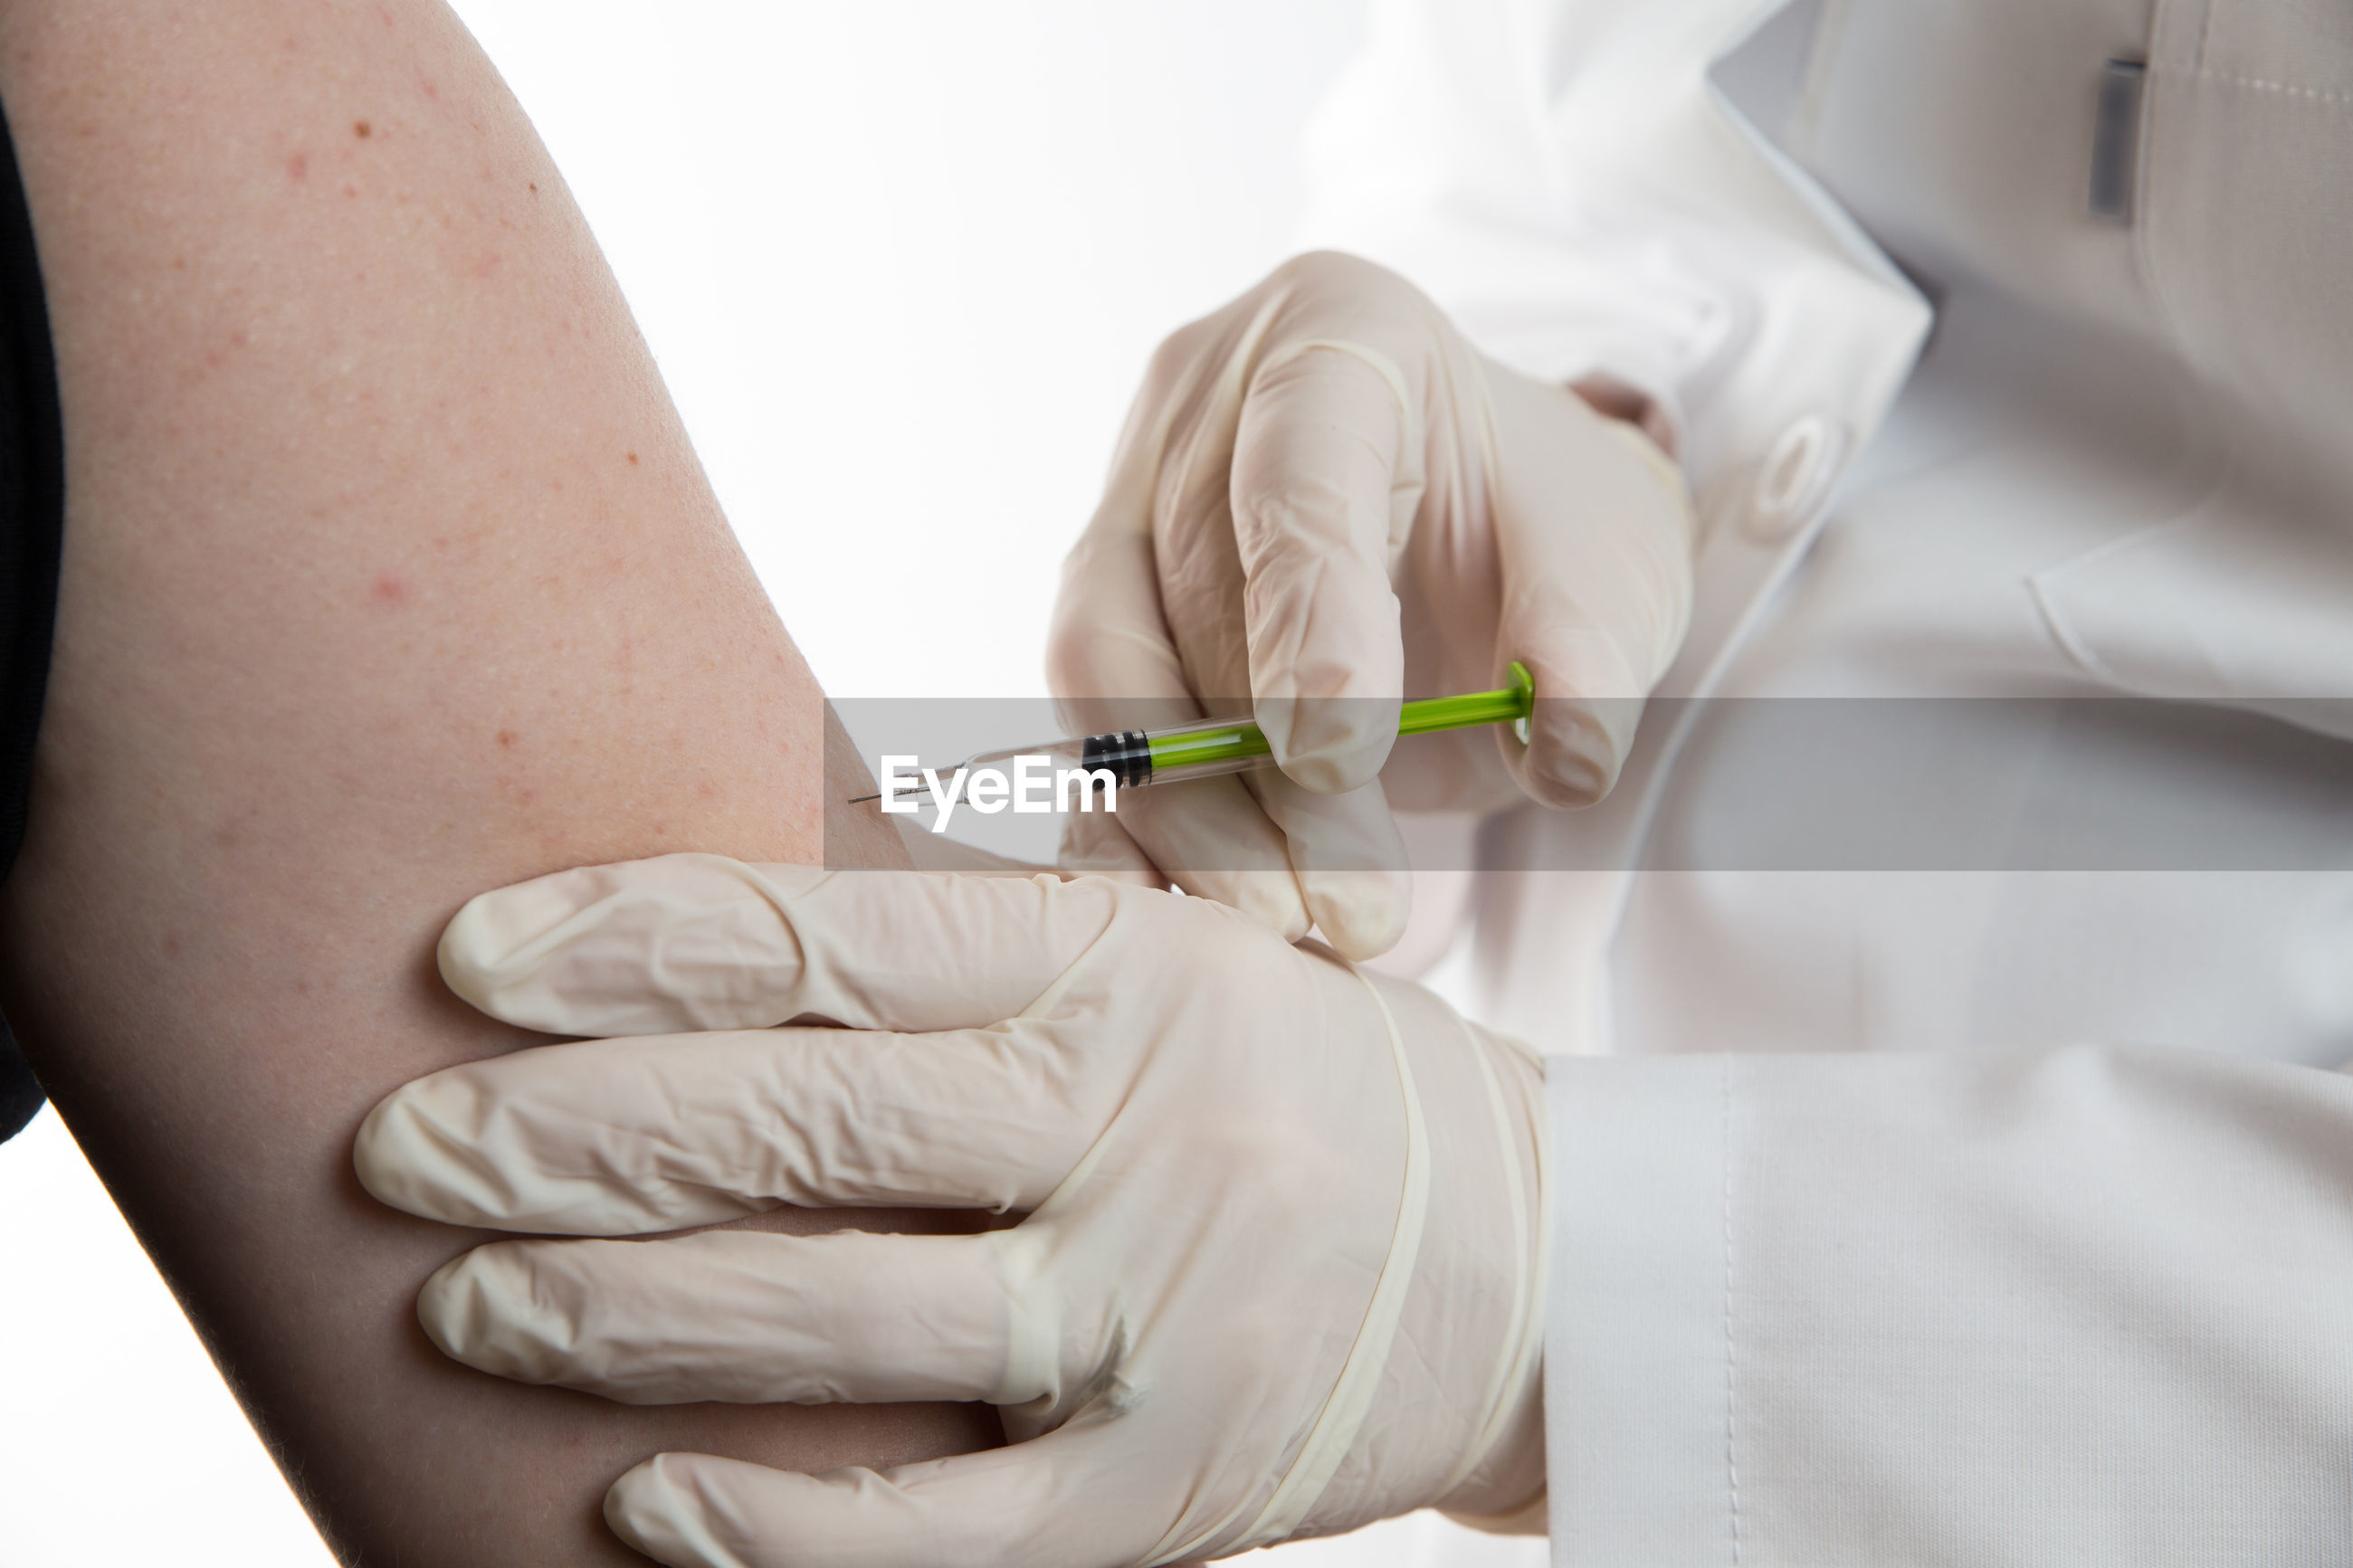 Midsection of doctor injecting syringe to patient against white background